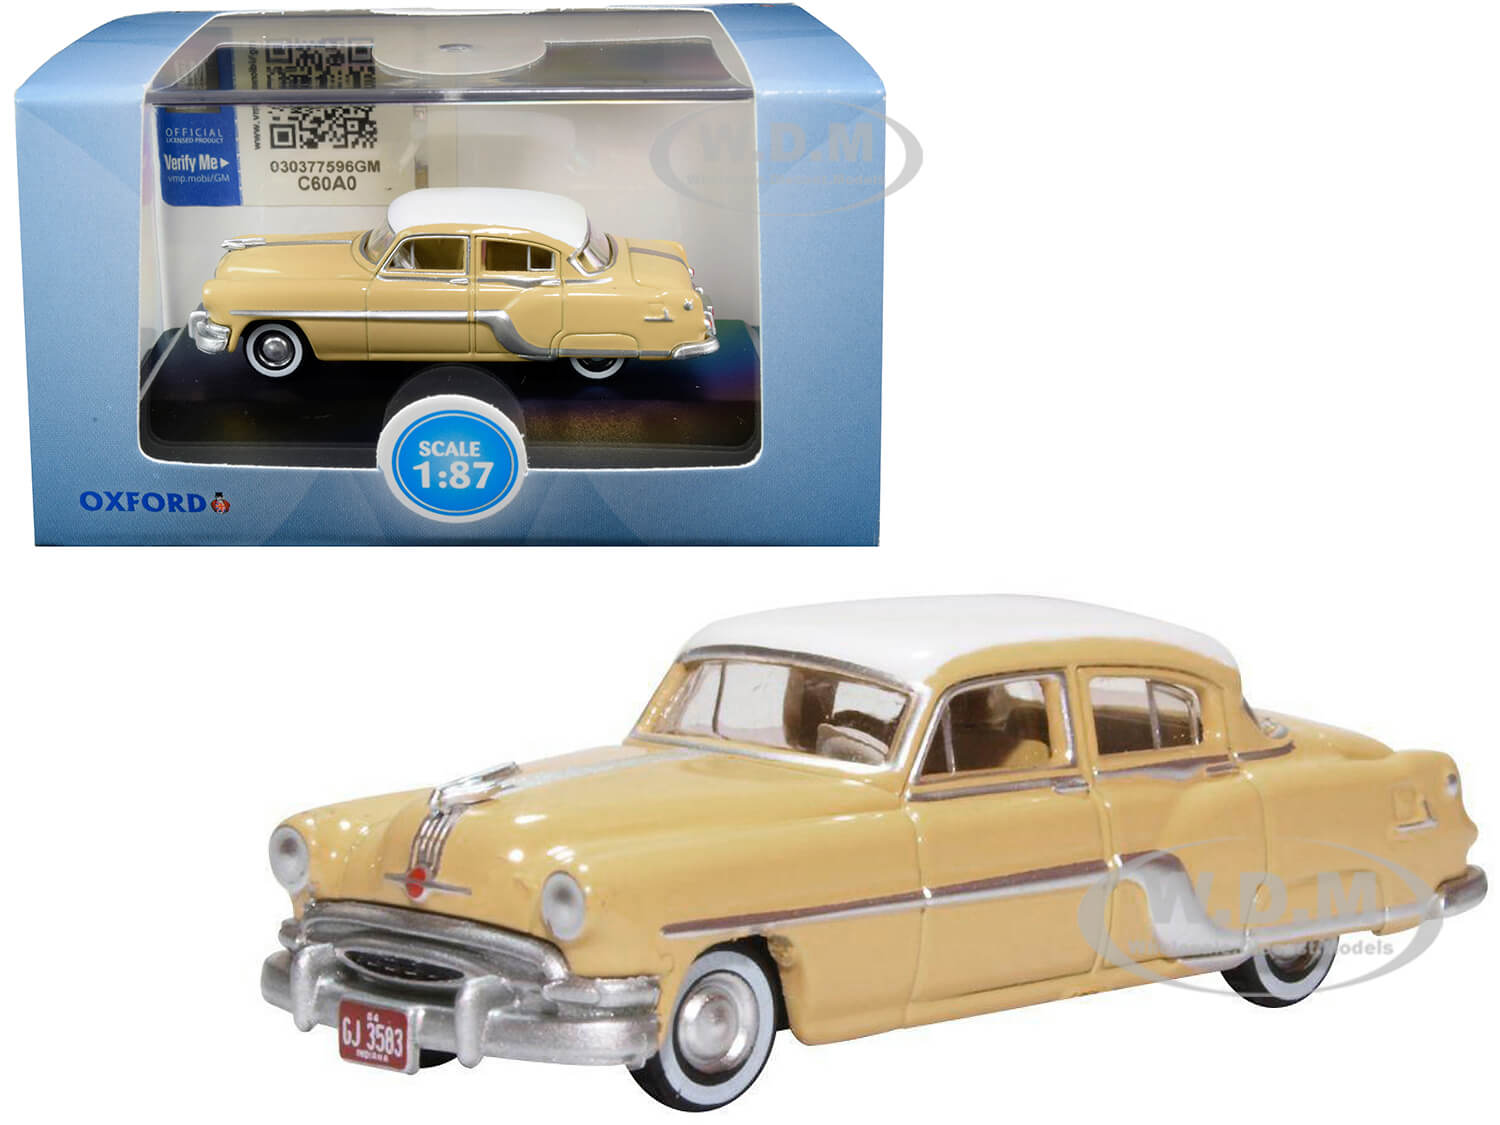 1954 Pontiac Chieftain 4 Door Maize Yellow with Winter White Top 1/87 (HO) Scale Diecast Model Car by Oxford Diecast